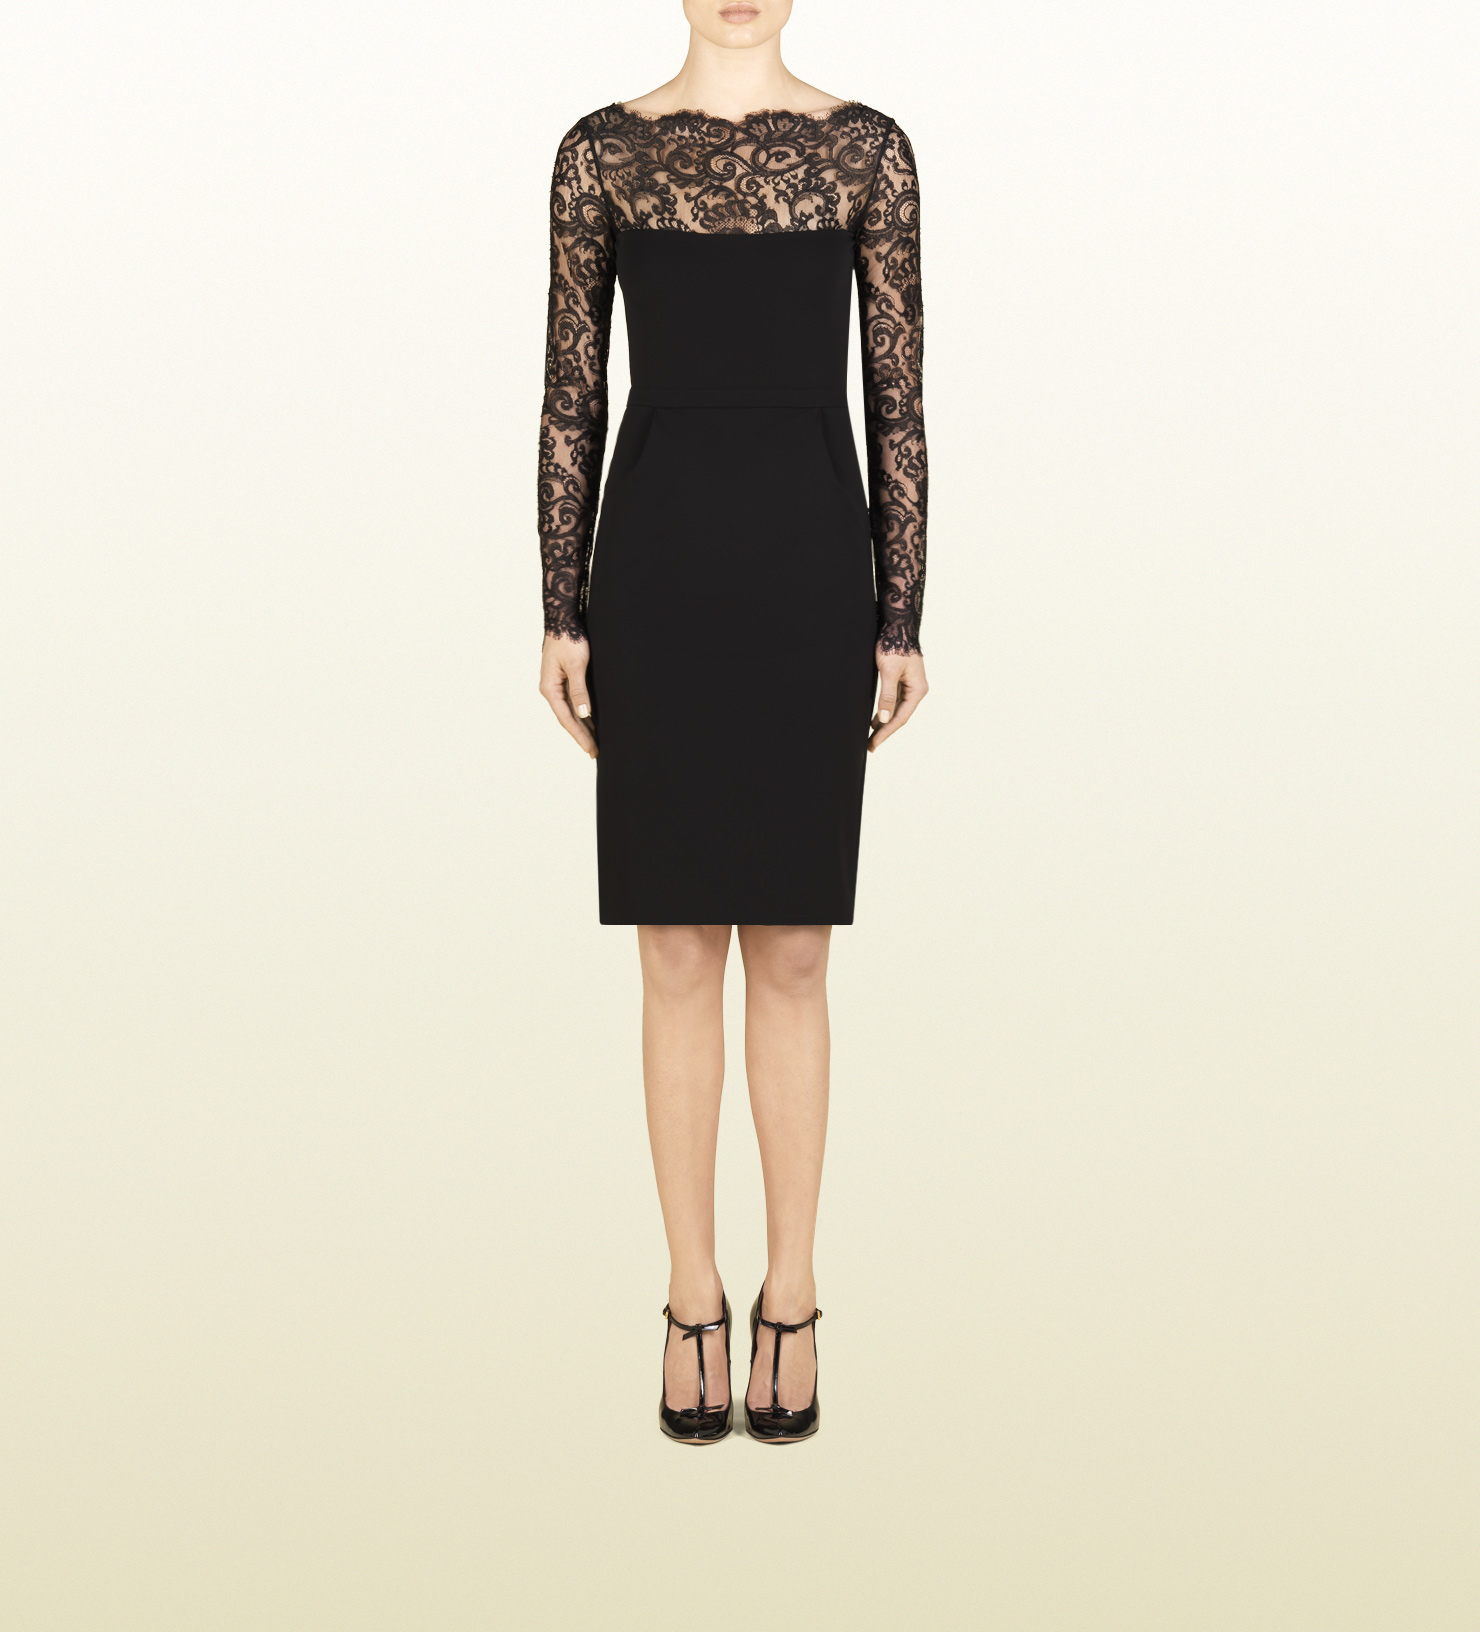 c907d1d99 Gucci Viscose Jersey Dress with Lace Detail in Black - Lyst